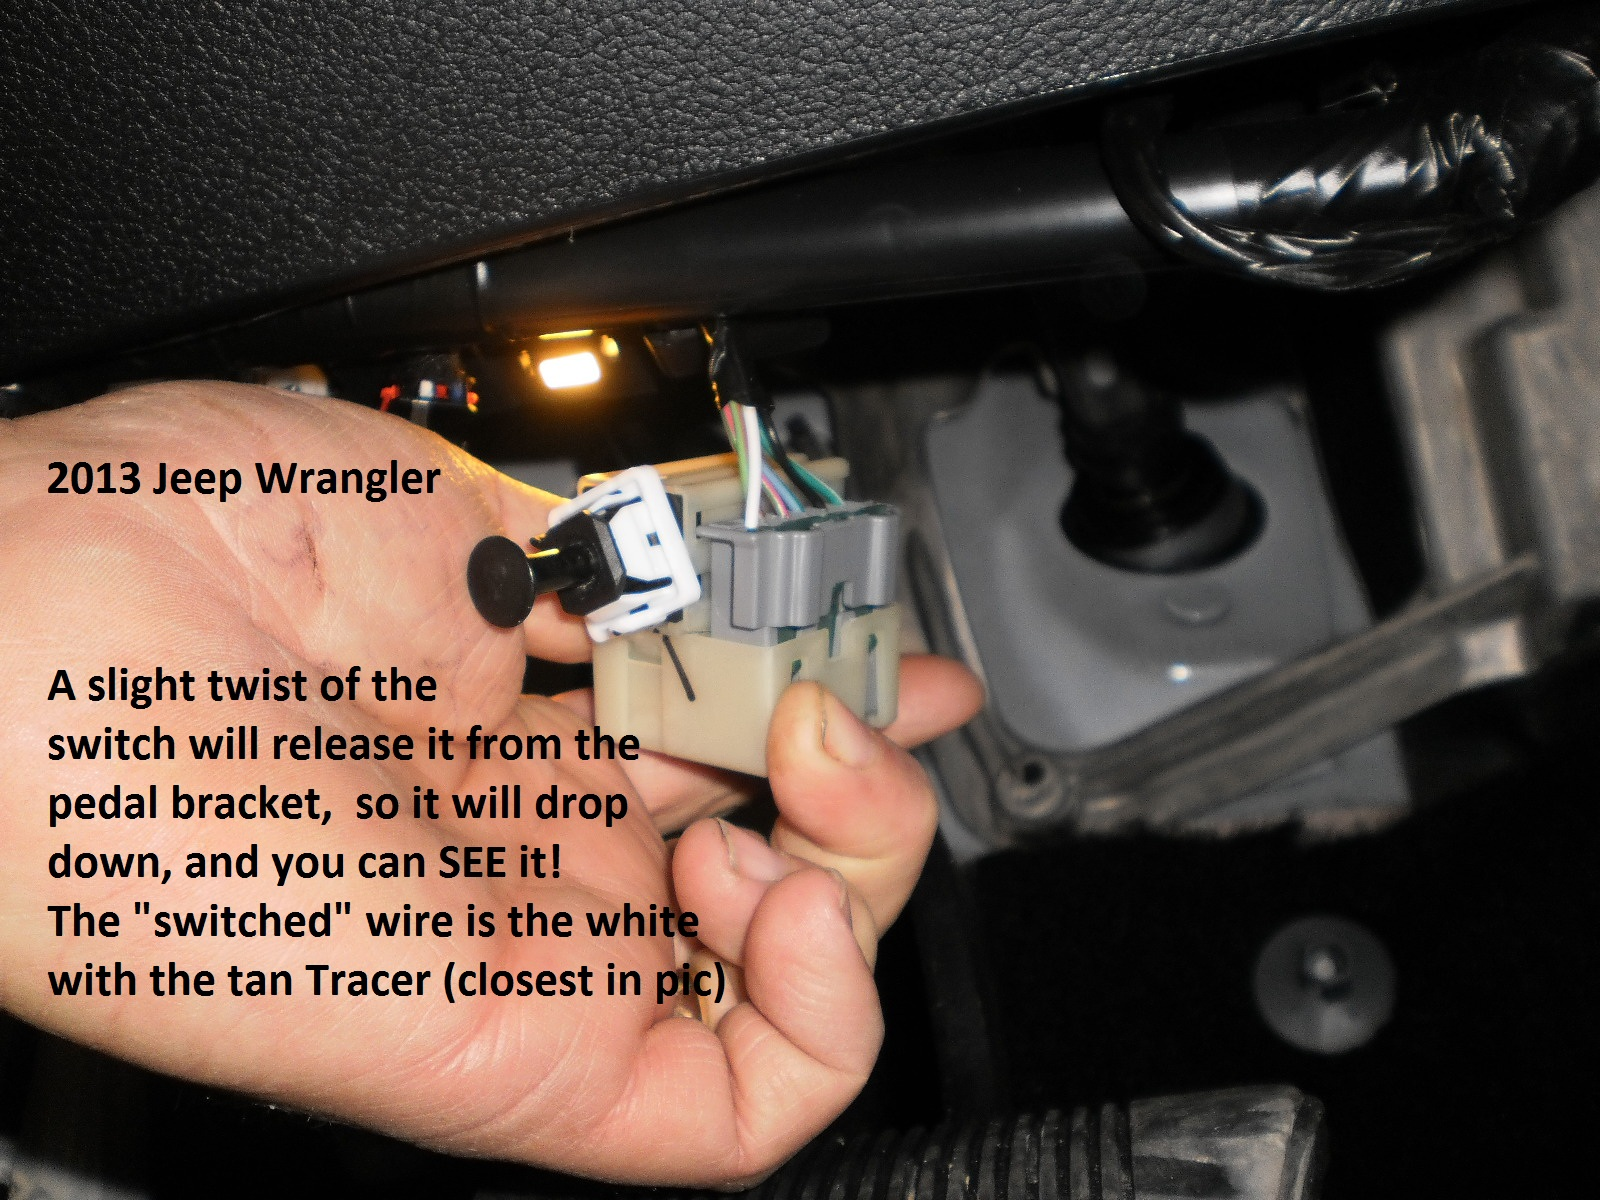 Jeep Yj Brake Wiring Unlimited Access To Diagram Information Trailer Harness Tj 2013 Wrangler Truck Controller Installation Instructions Rh Needatrailer Com